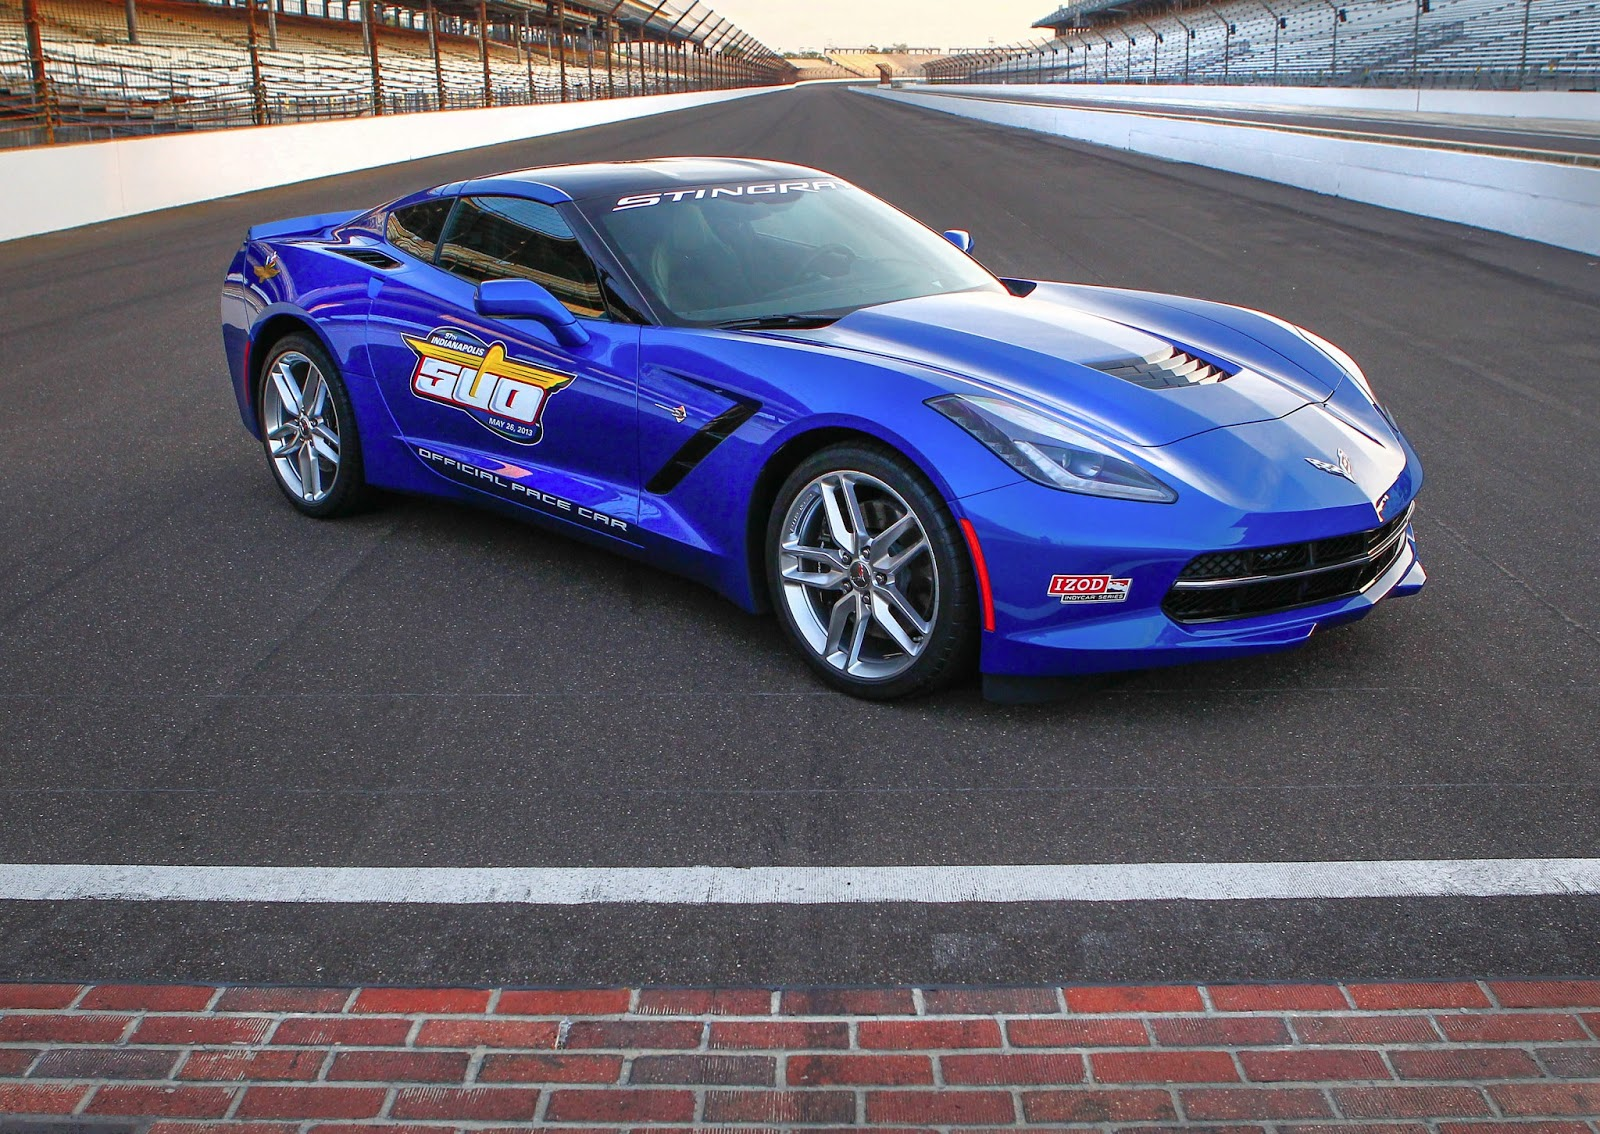 Indianapolis 500 2014 Corvette Stingray Pace Car